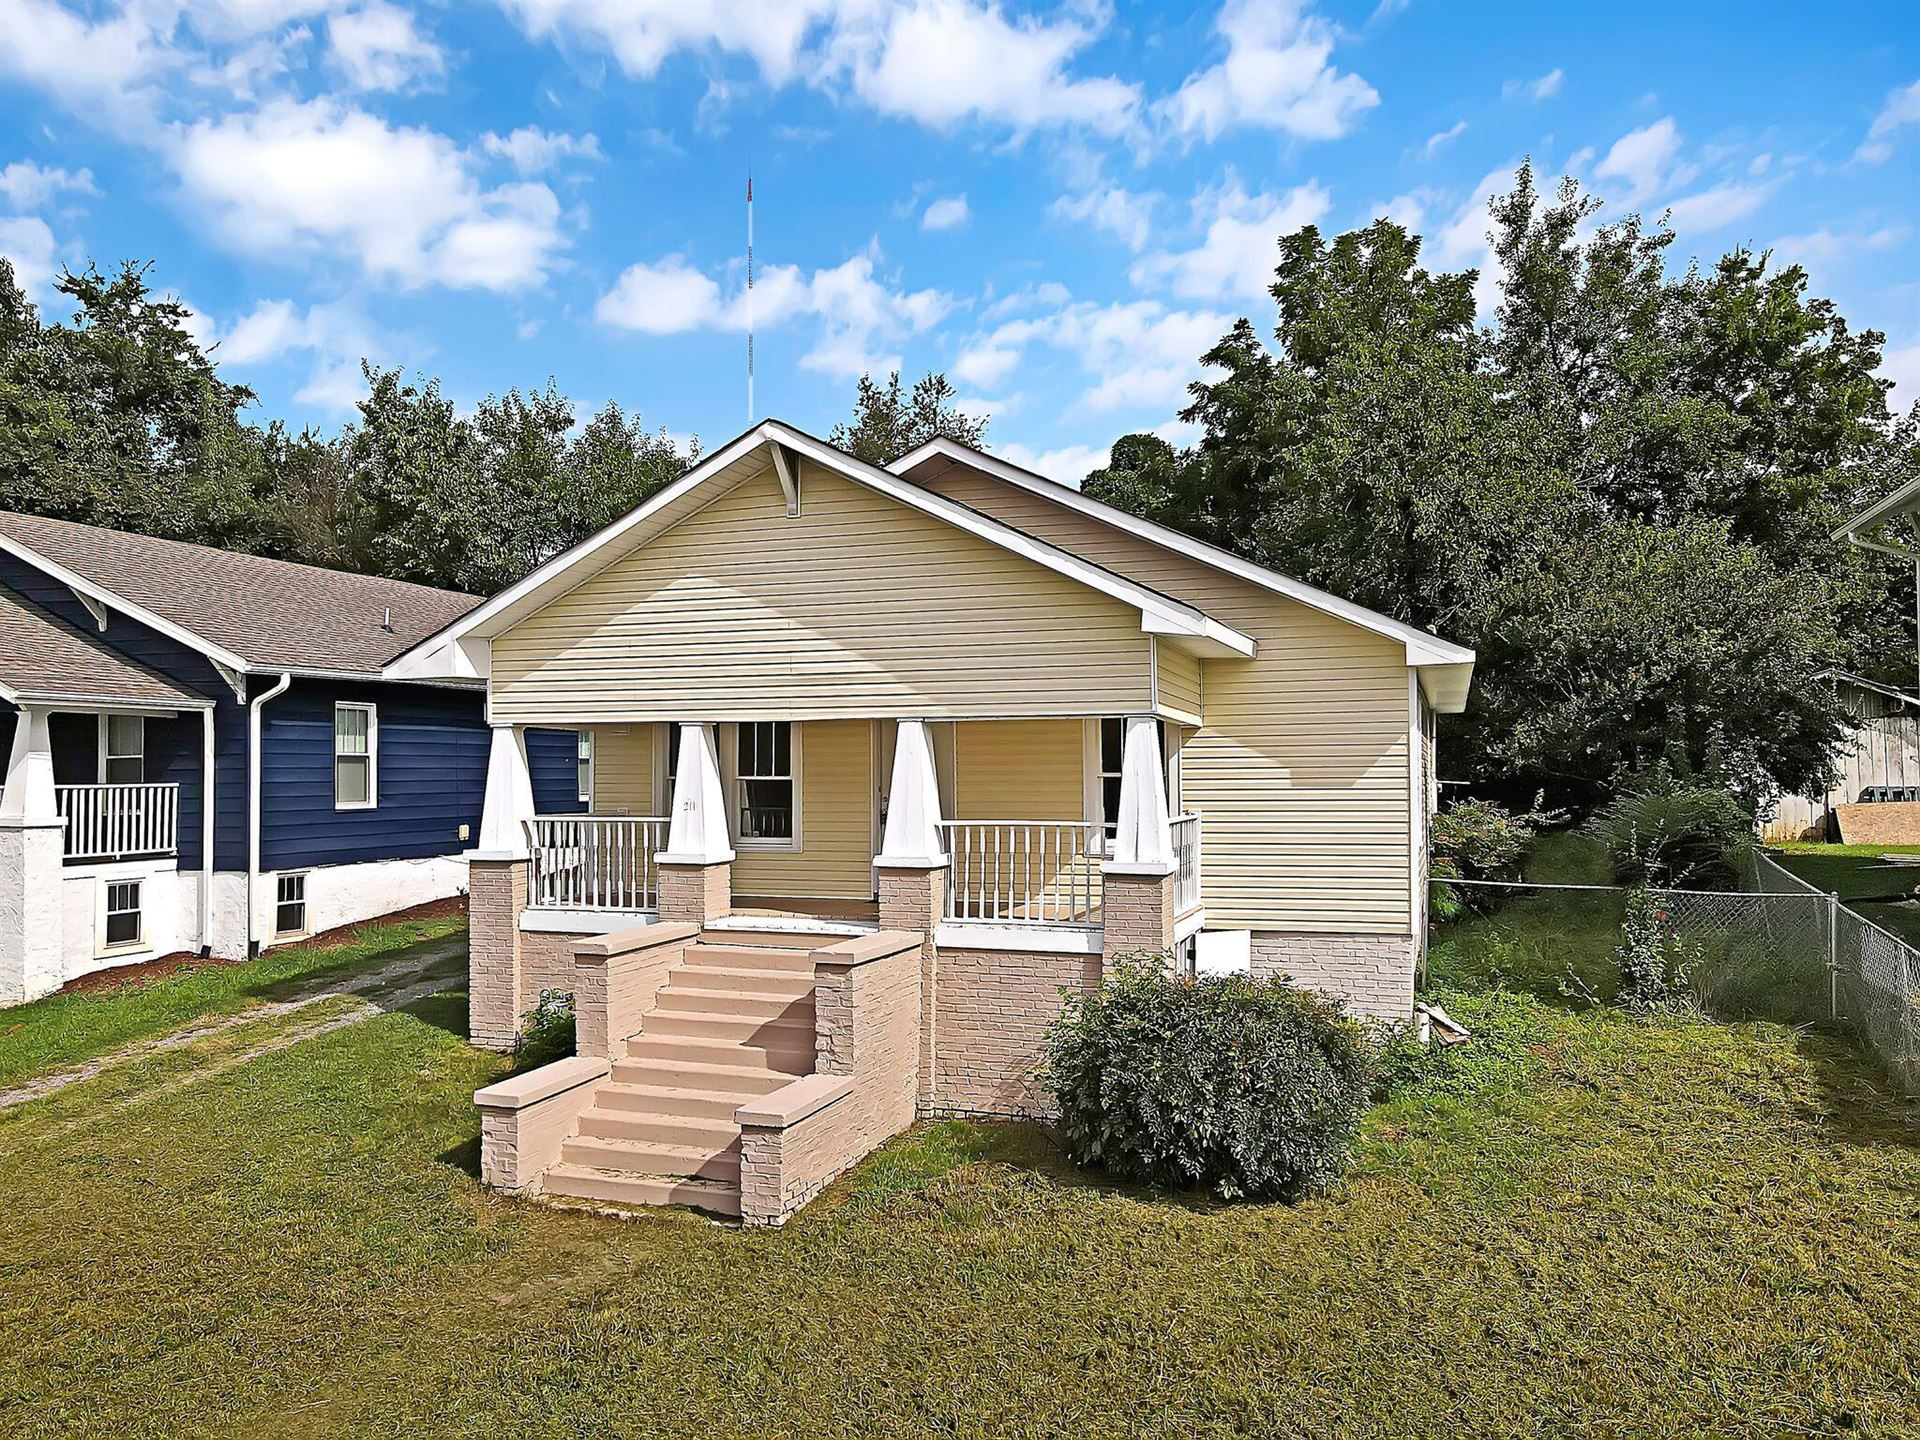 Photo of 1211 Hiawassee Ave, Knoxville, TN 37917 (MLS # 1164491)